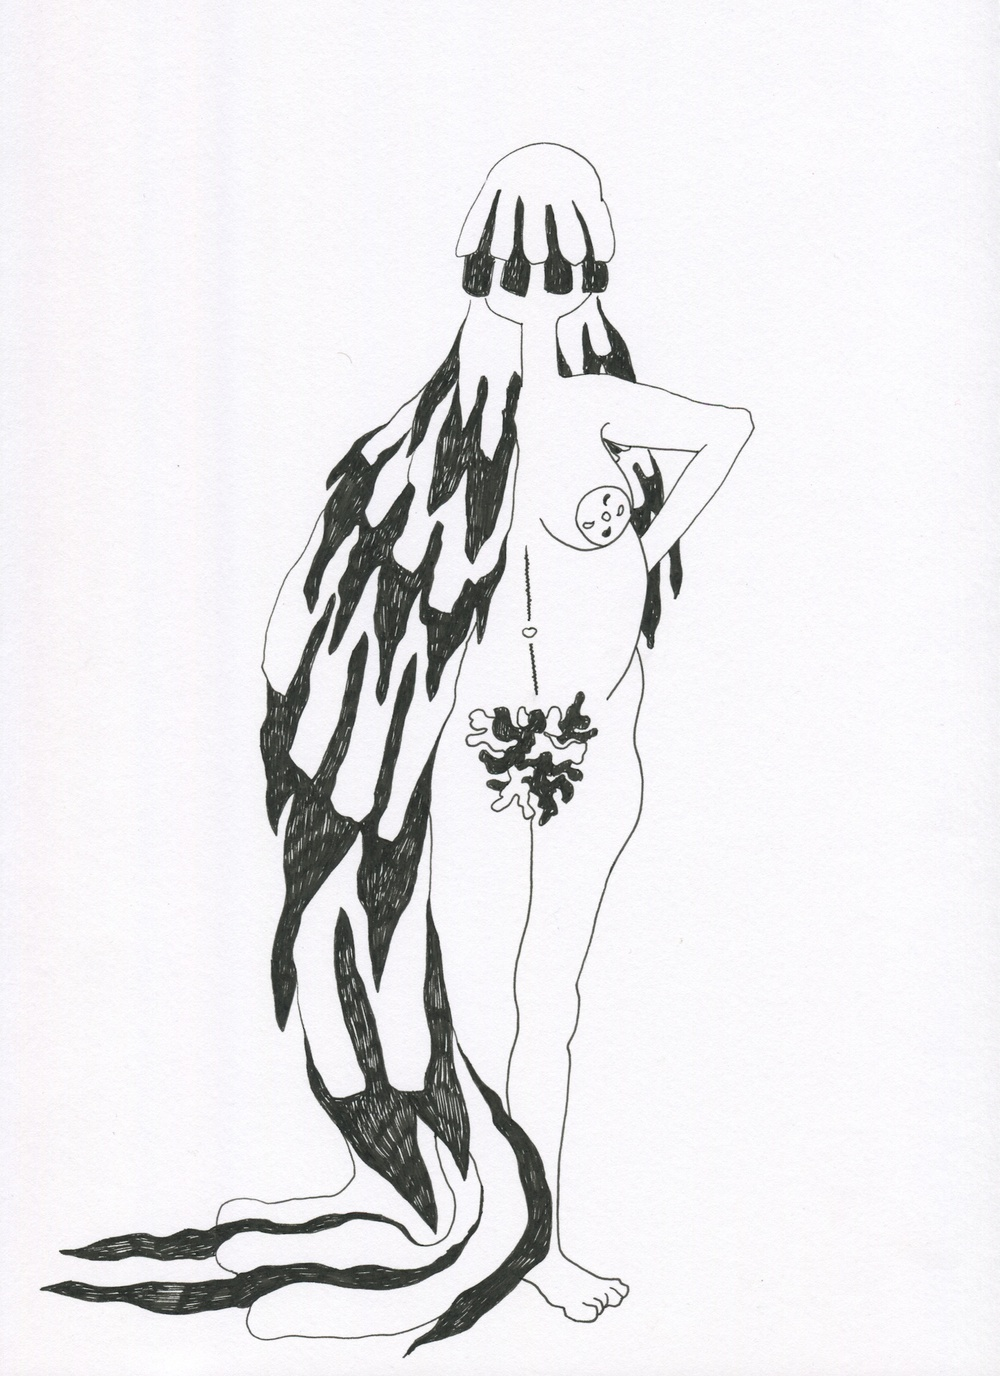 Feminine Wrappings from the Venus of Brisbane series, 2015, Ink on paper, 21.0 x 30.0 cm